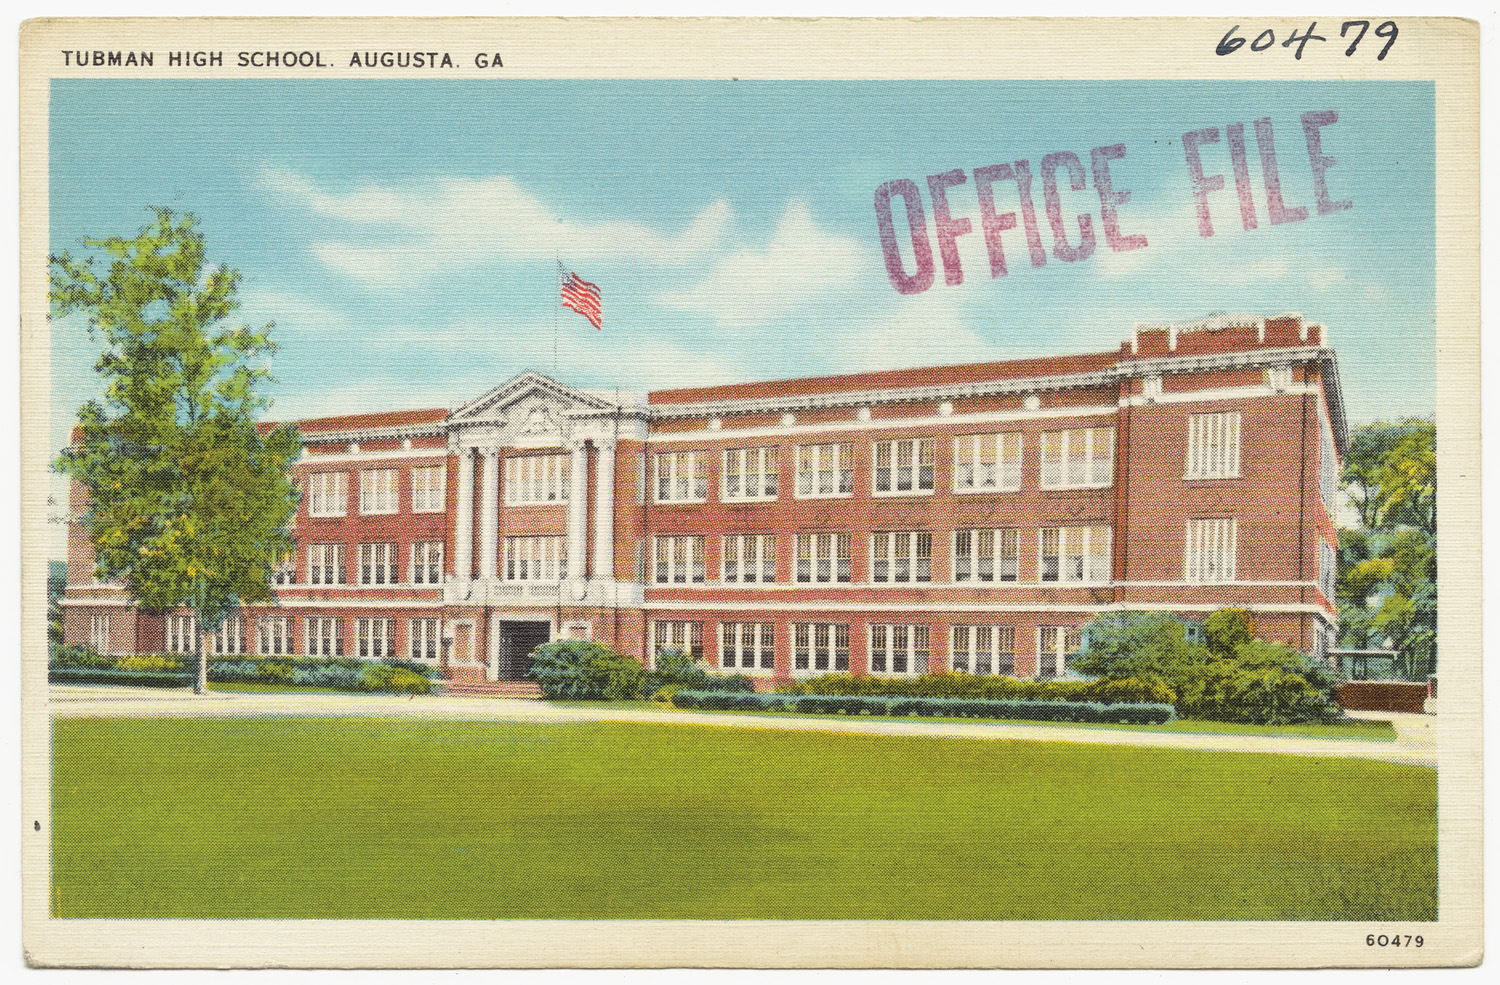 Postcard of Tubman High School. Source: Boston Public Library